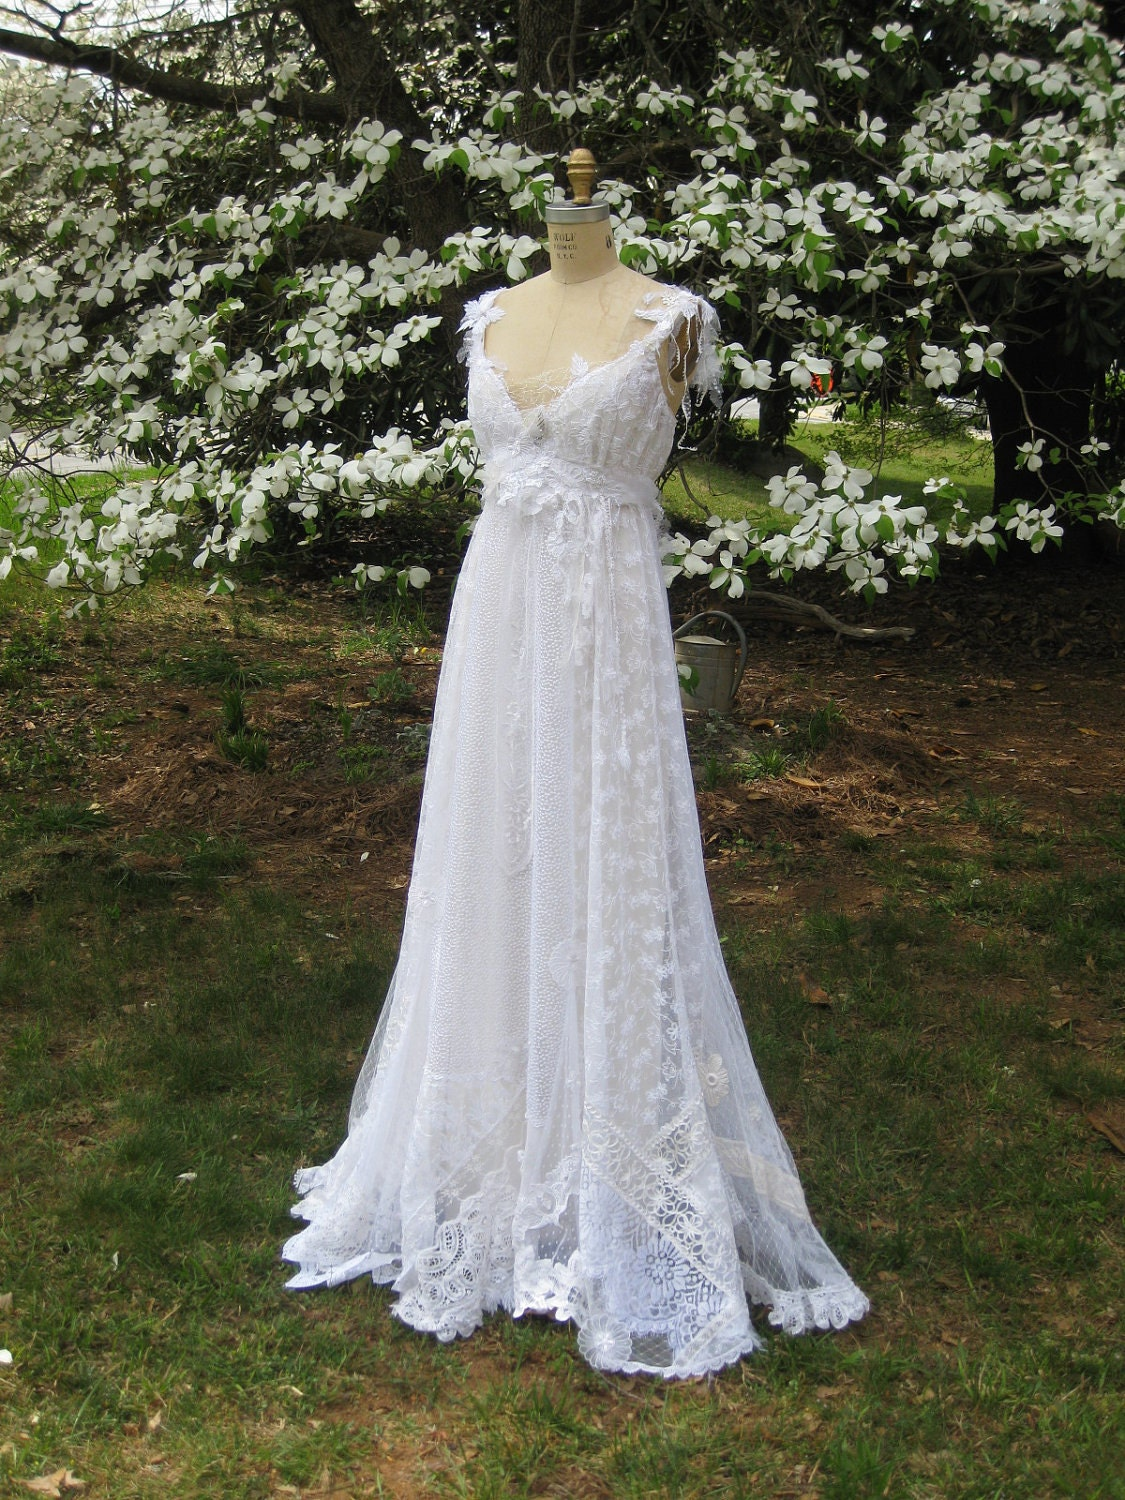 Hippie Lace Collage Gown One of a Kind Boho Wedding Dress